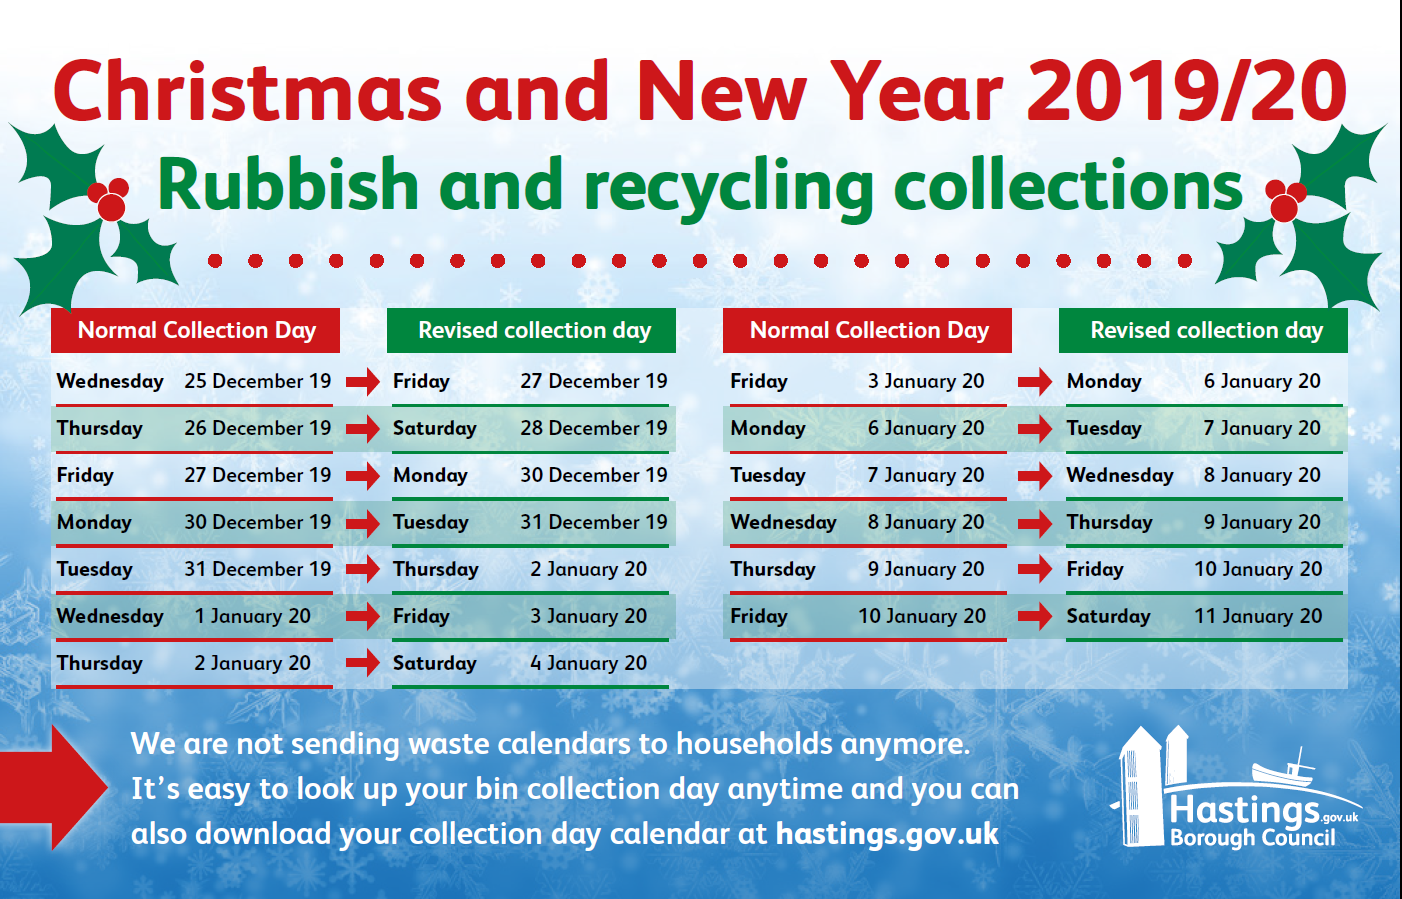 Find out about changes to rubbish and recycling collections over Christmas and new year